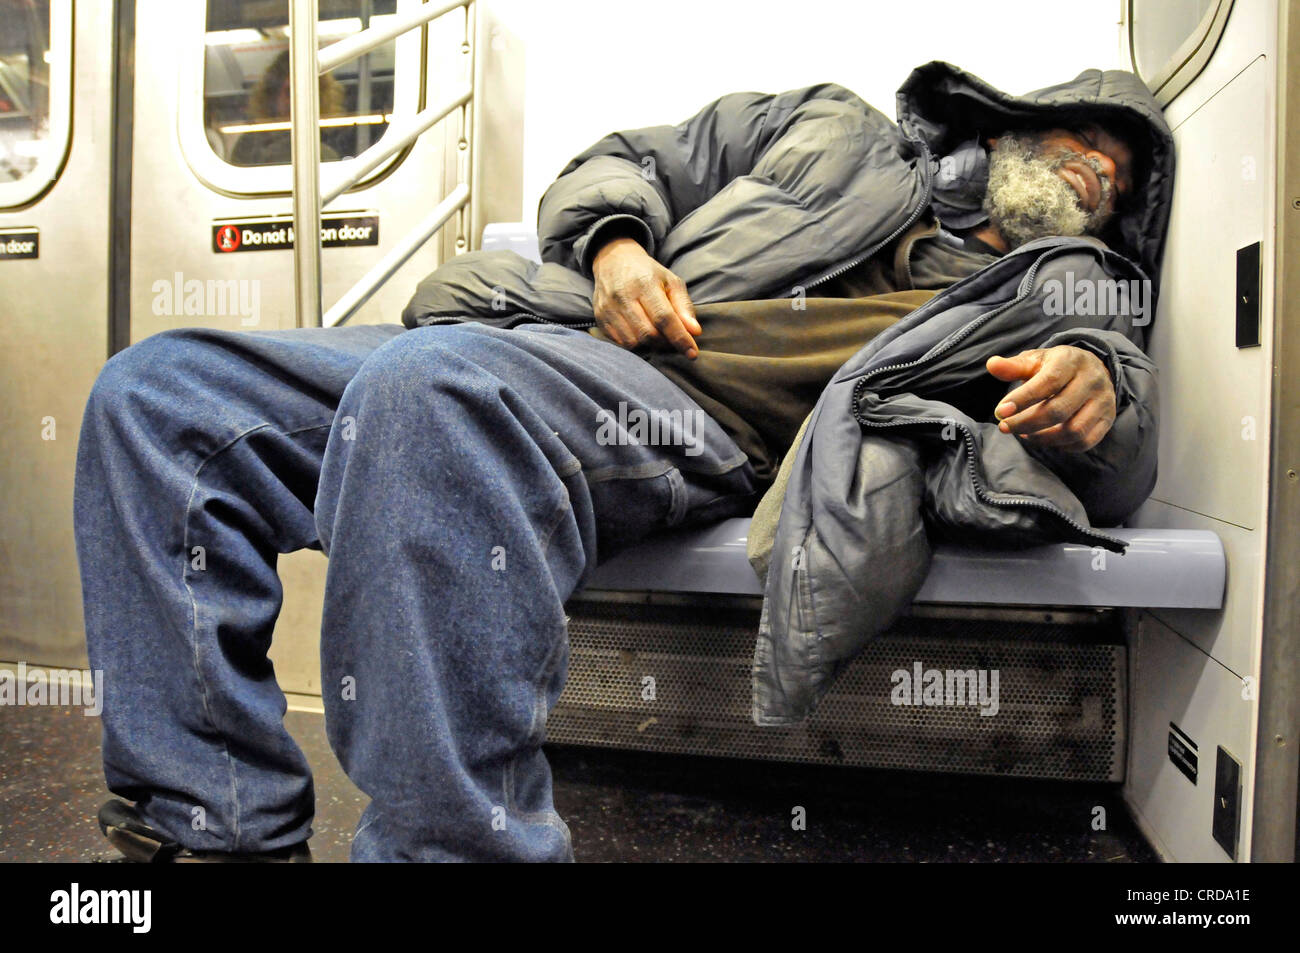 Obdachlose schlafen in der U-Bahn, USA, New York City, Manhattan Stockbild